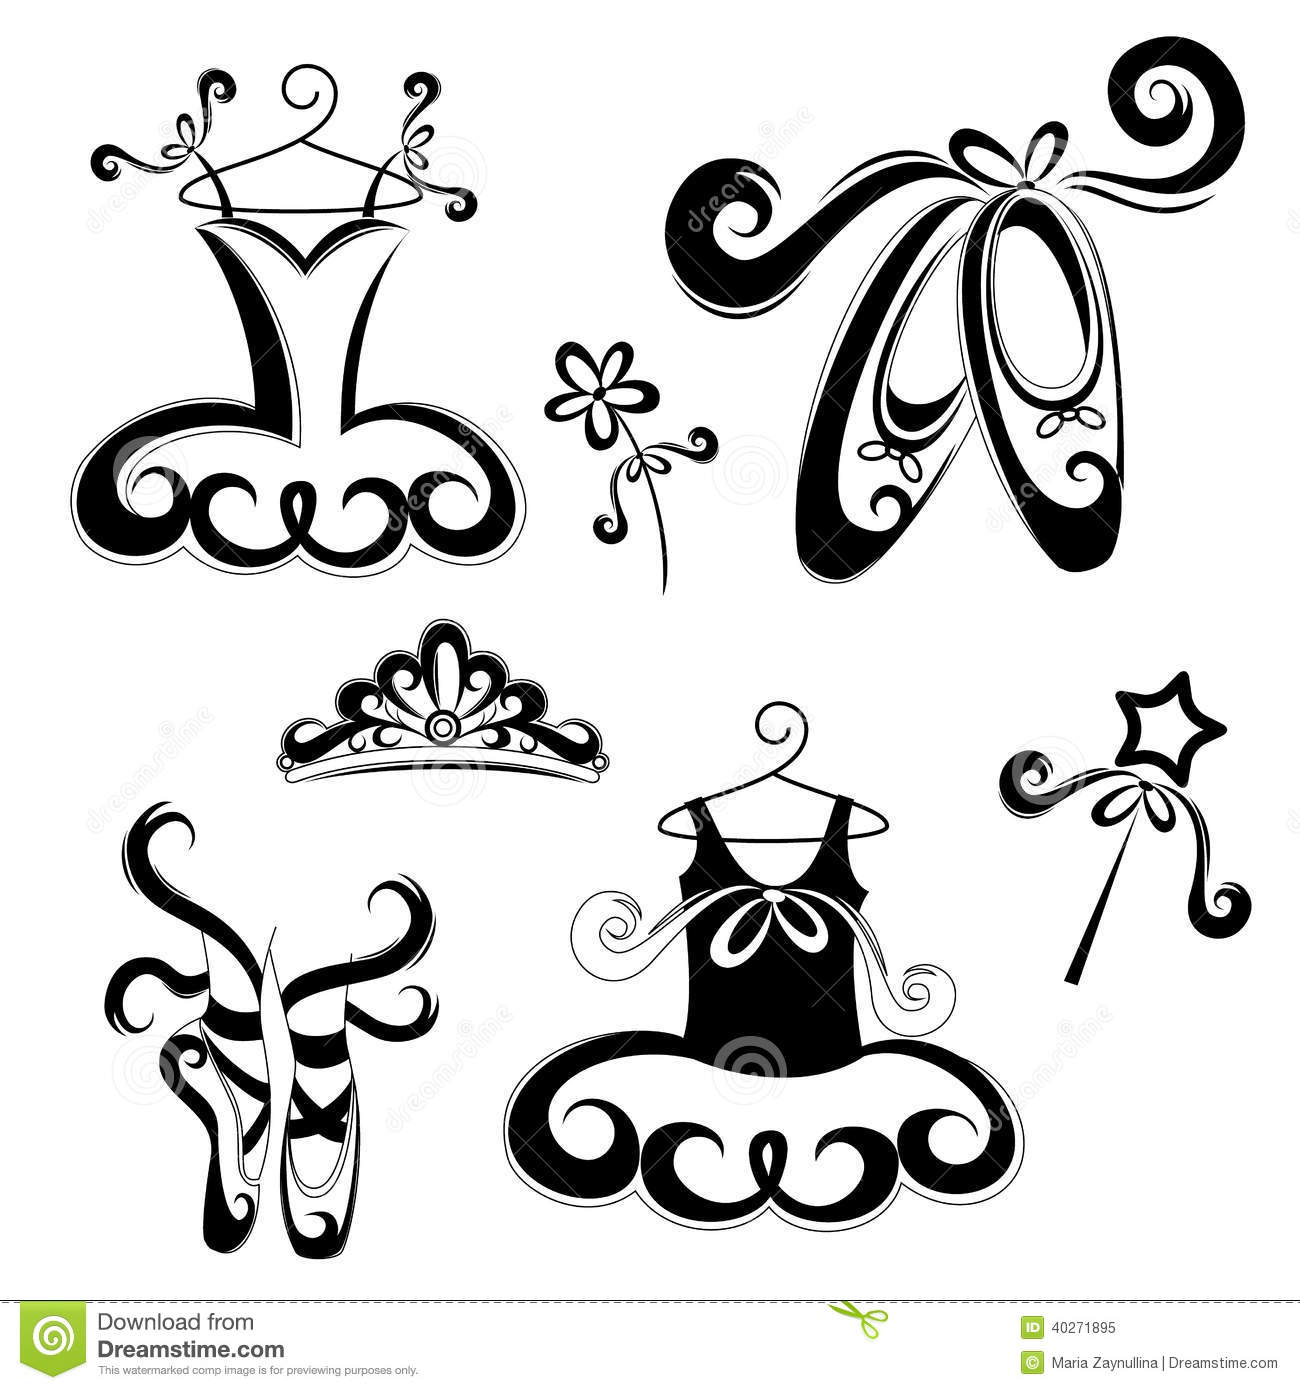 Royalty Free Stock Photo Ballet Accessories Set Drawing Design Element Decoration Image40271895 on dress shoes clip art